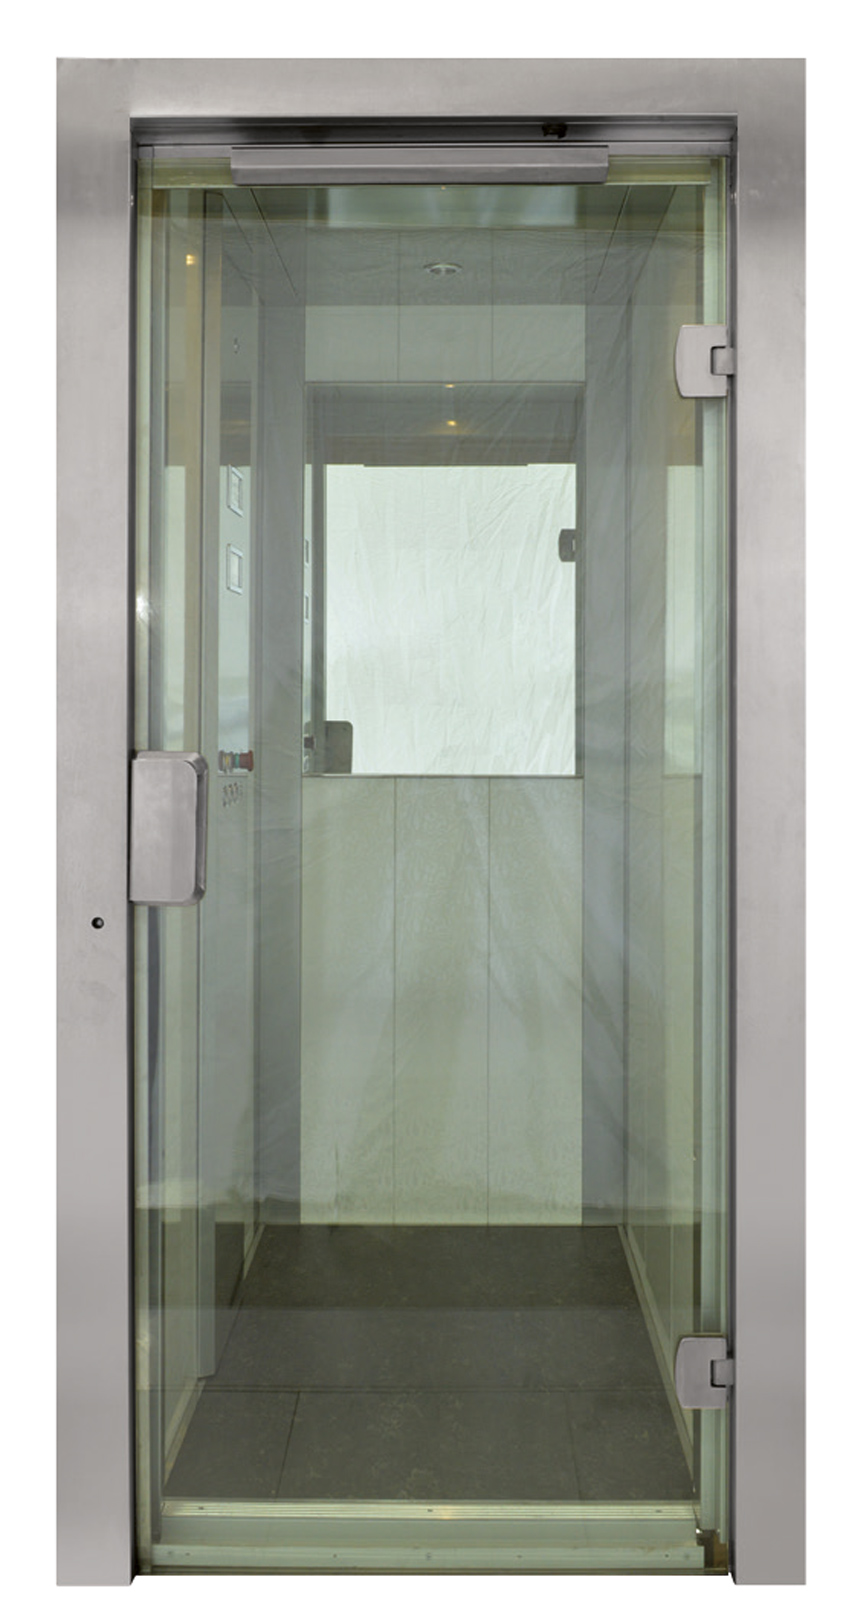 Bright stainless steel Full glass door